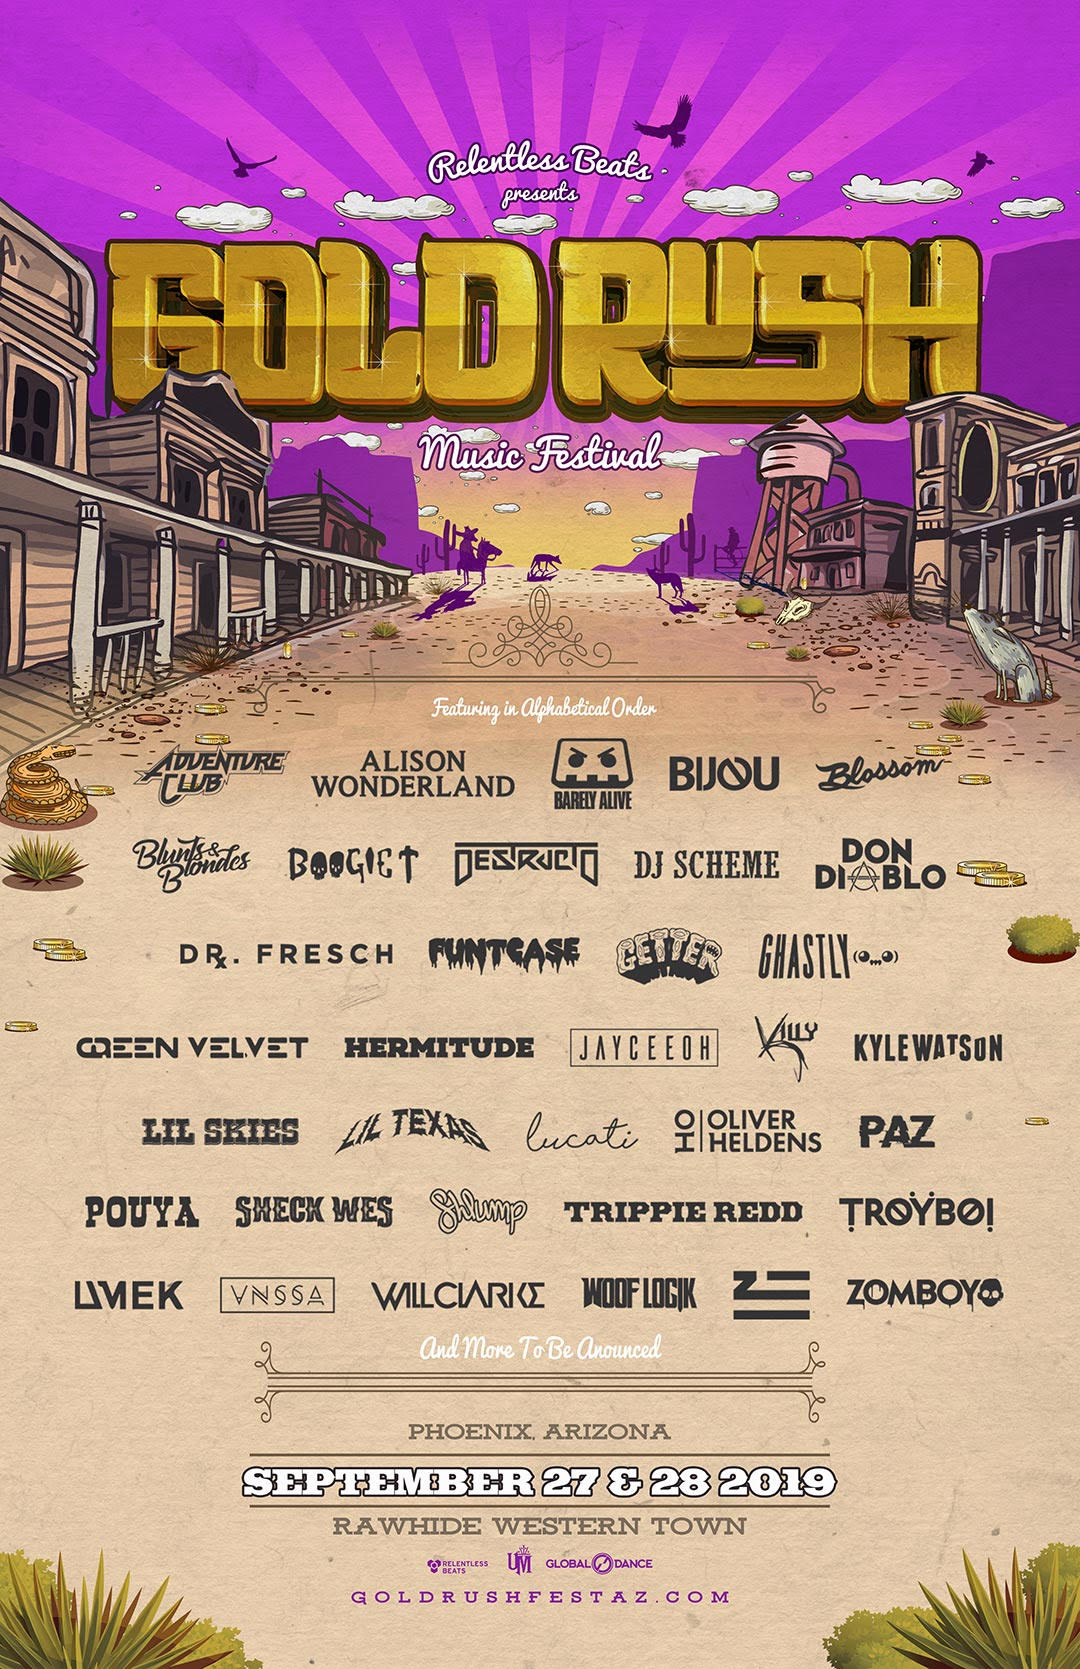 Goldrush 2019 Announces a Banning Lineup for Round 2 Artists